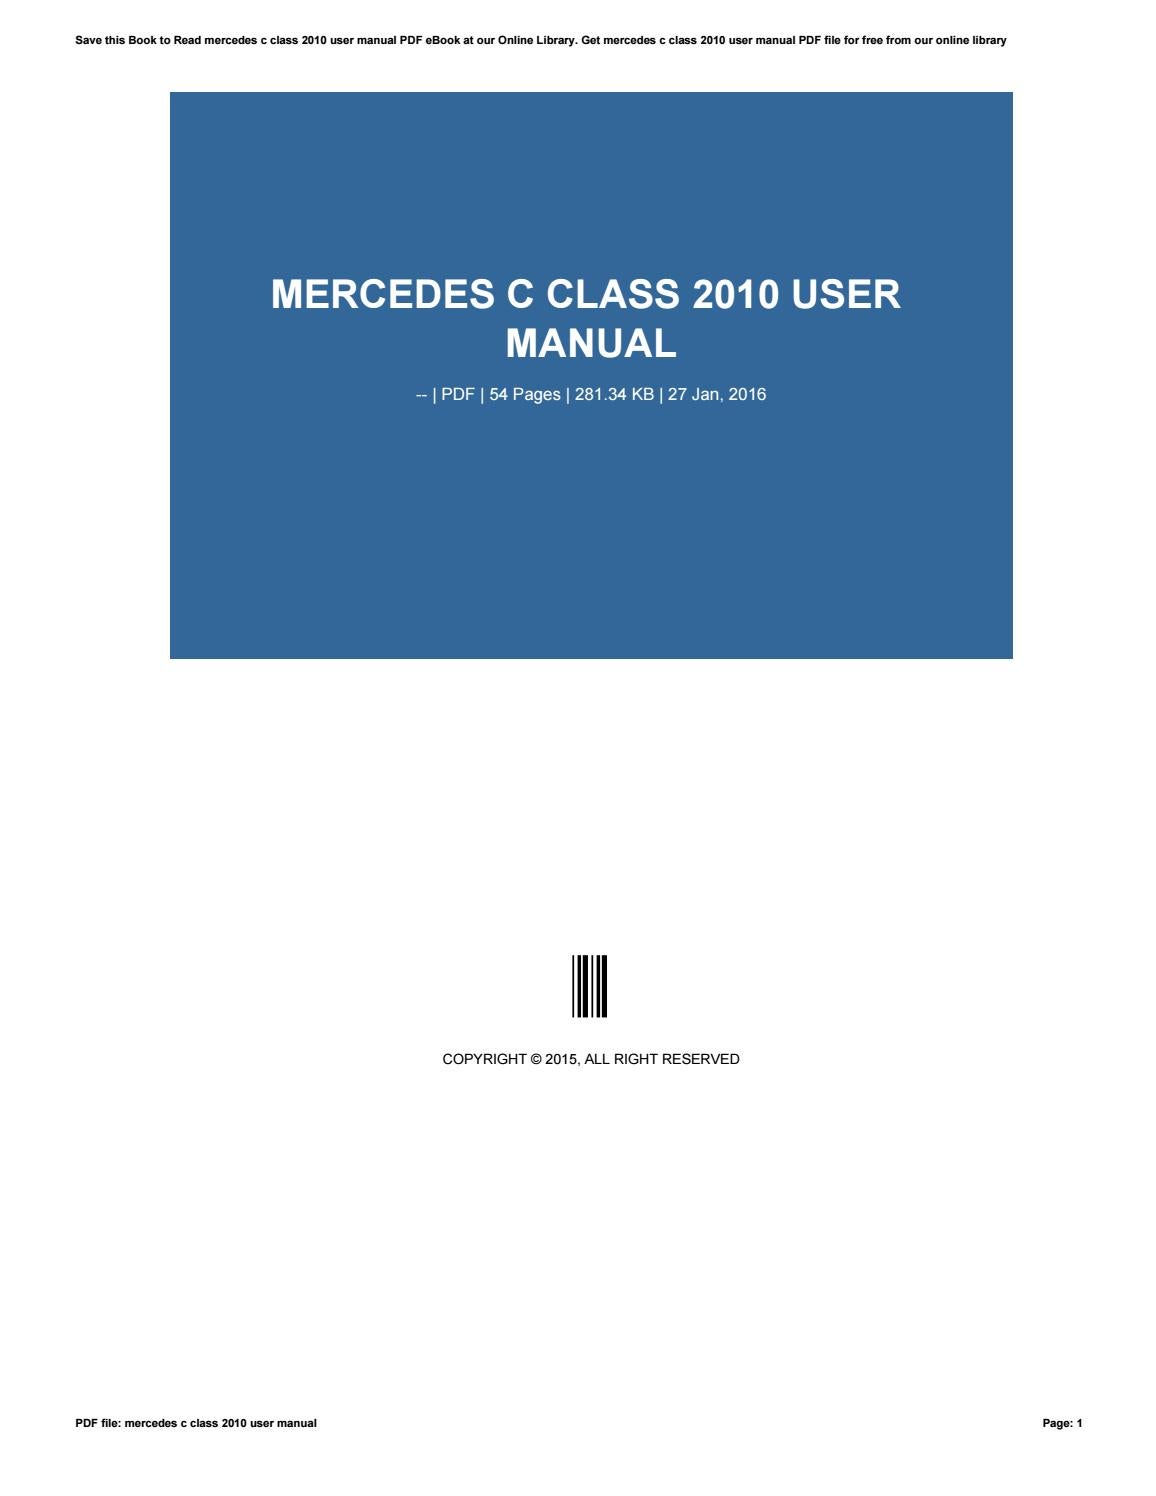 Mercedes C180 Owners Manual Pdf